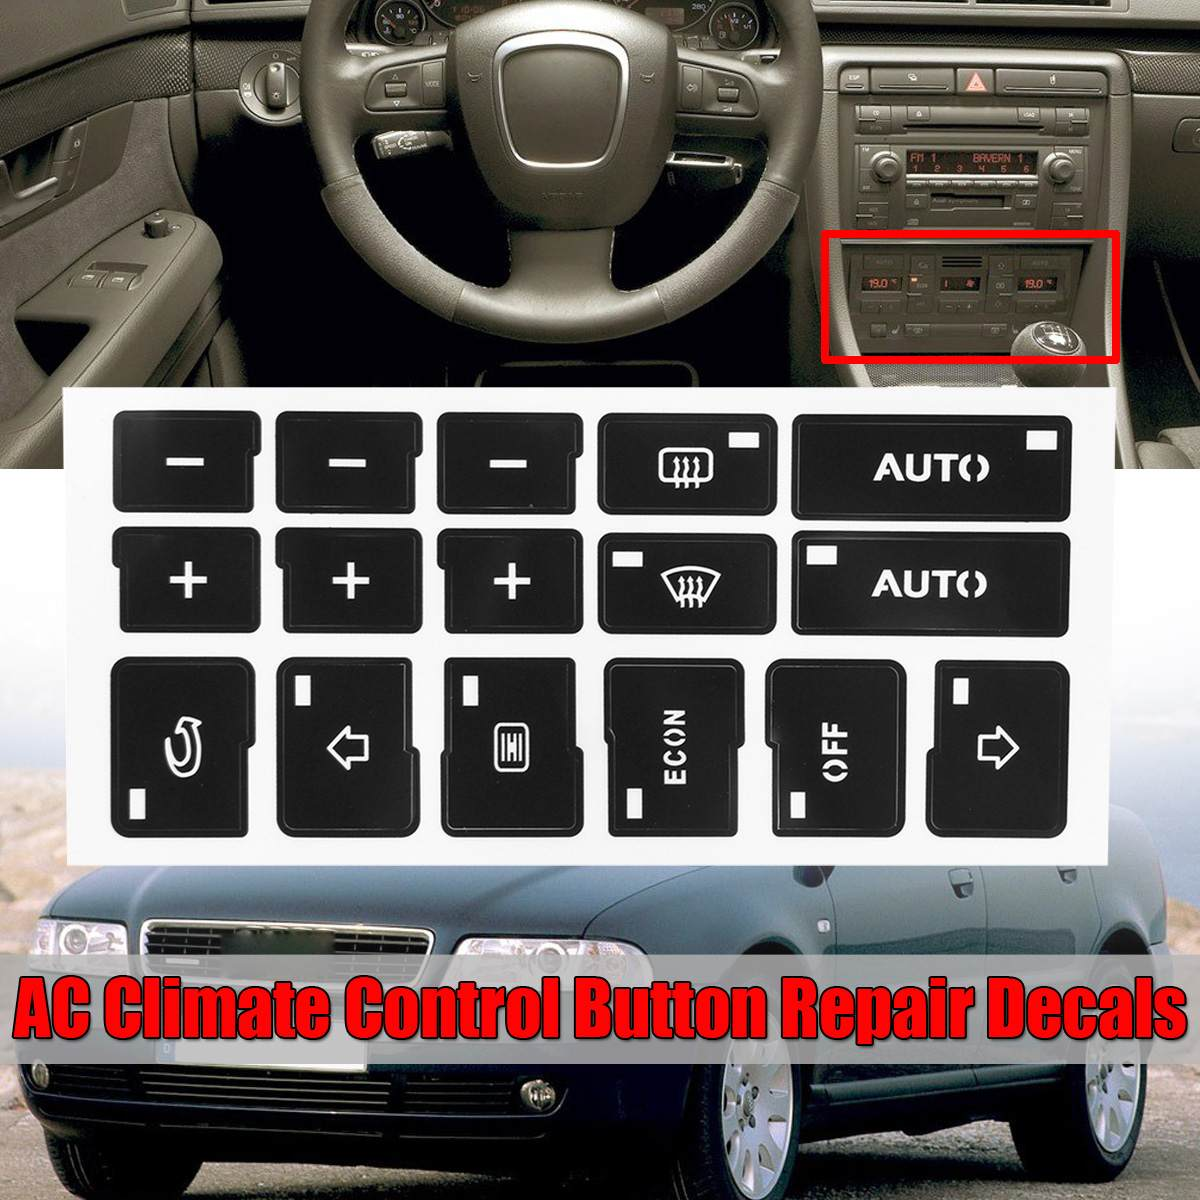 1x Car Air Condition AC Climate Control Button Repair Stickers Decals For Audi A4 B6 B7 2000 2001 <font><b>2002</b></font> 2003 2004 image